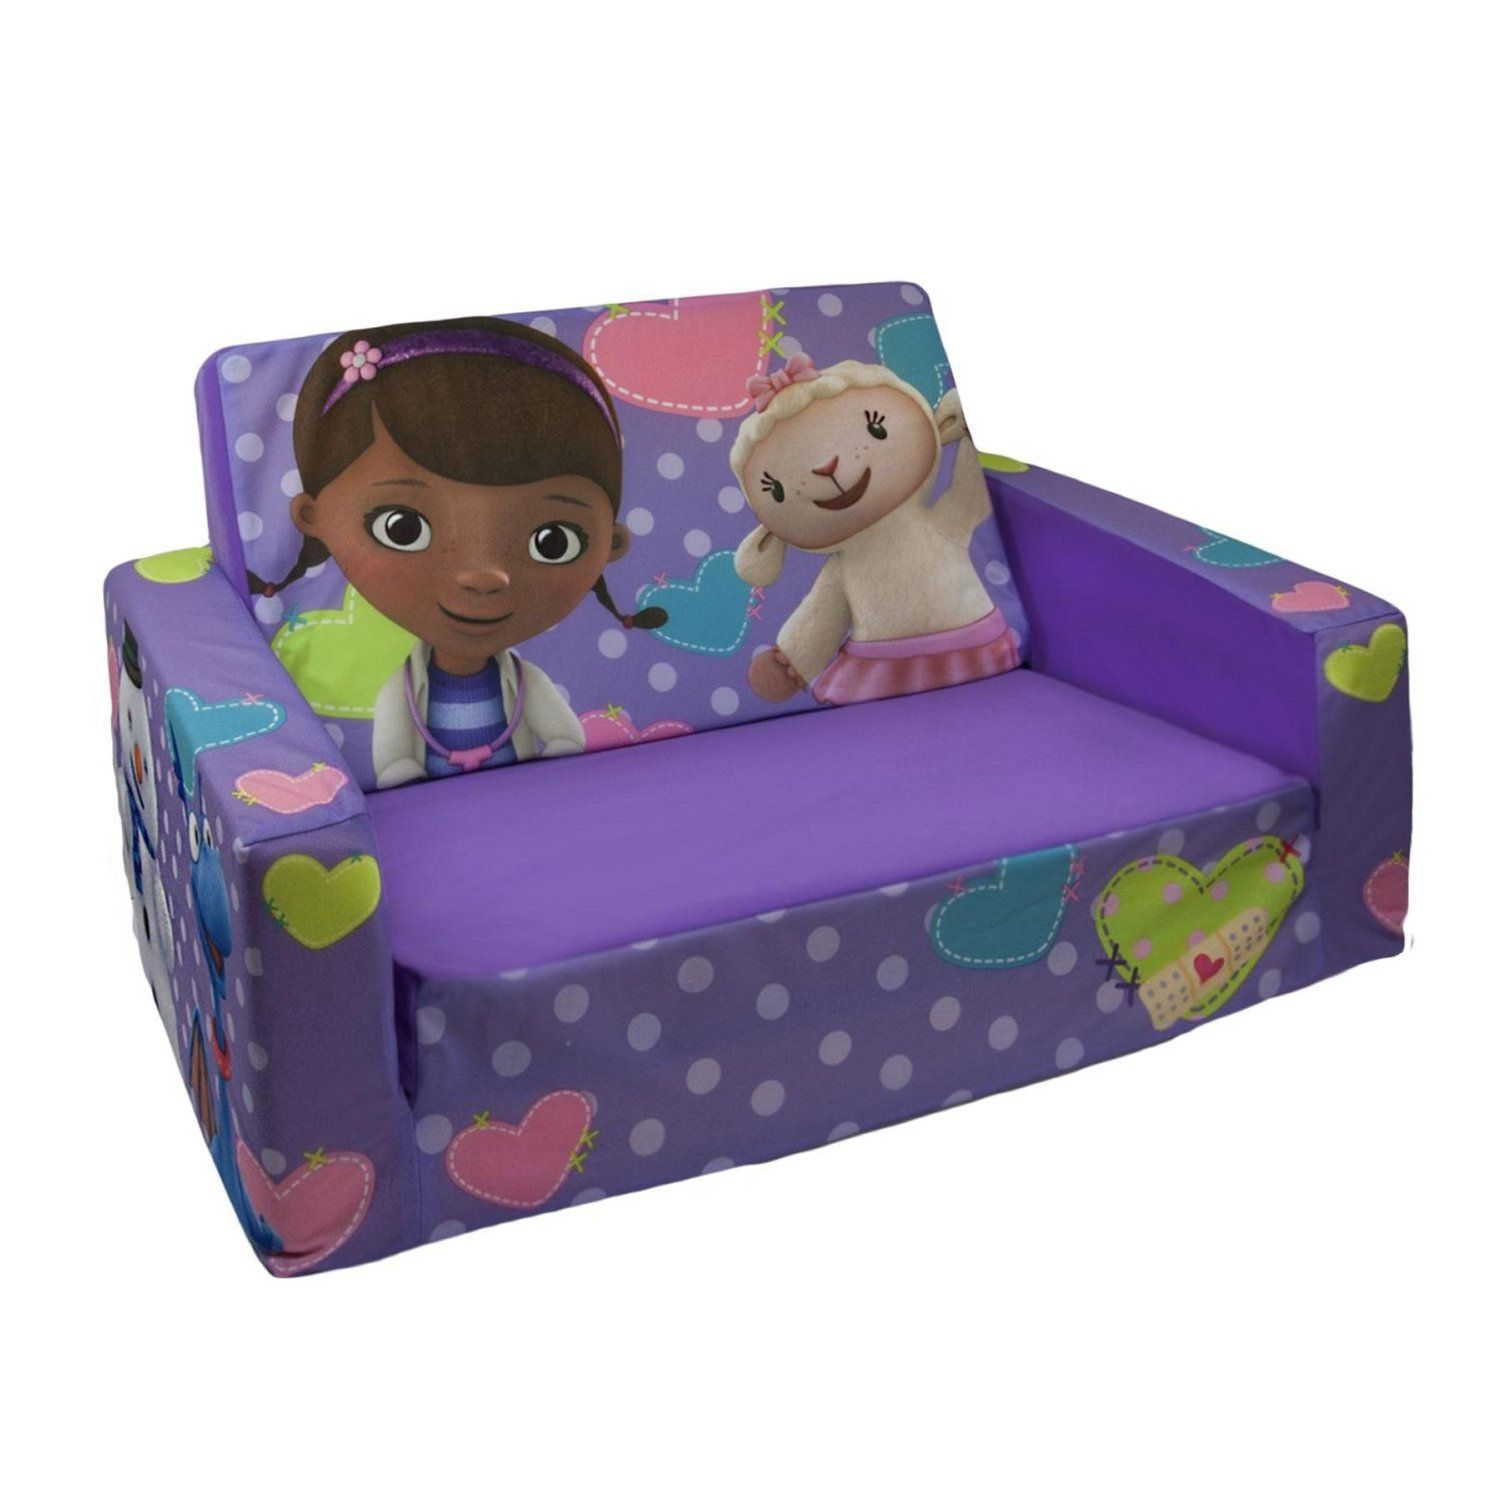 17 Best images about Raelyns Big Girl Room! on Pinterest | Disney, Activity  tables and Doc McStuffins